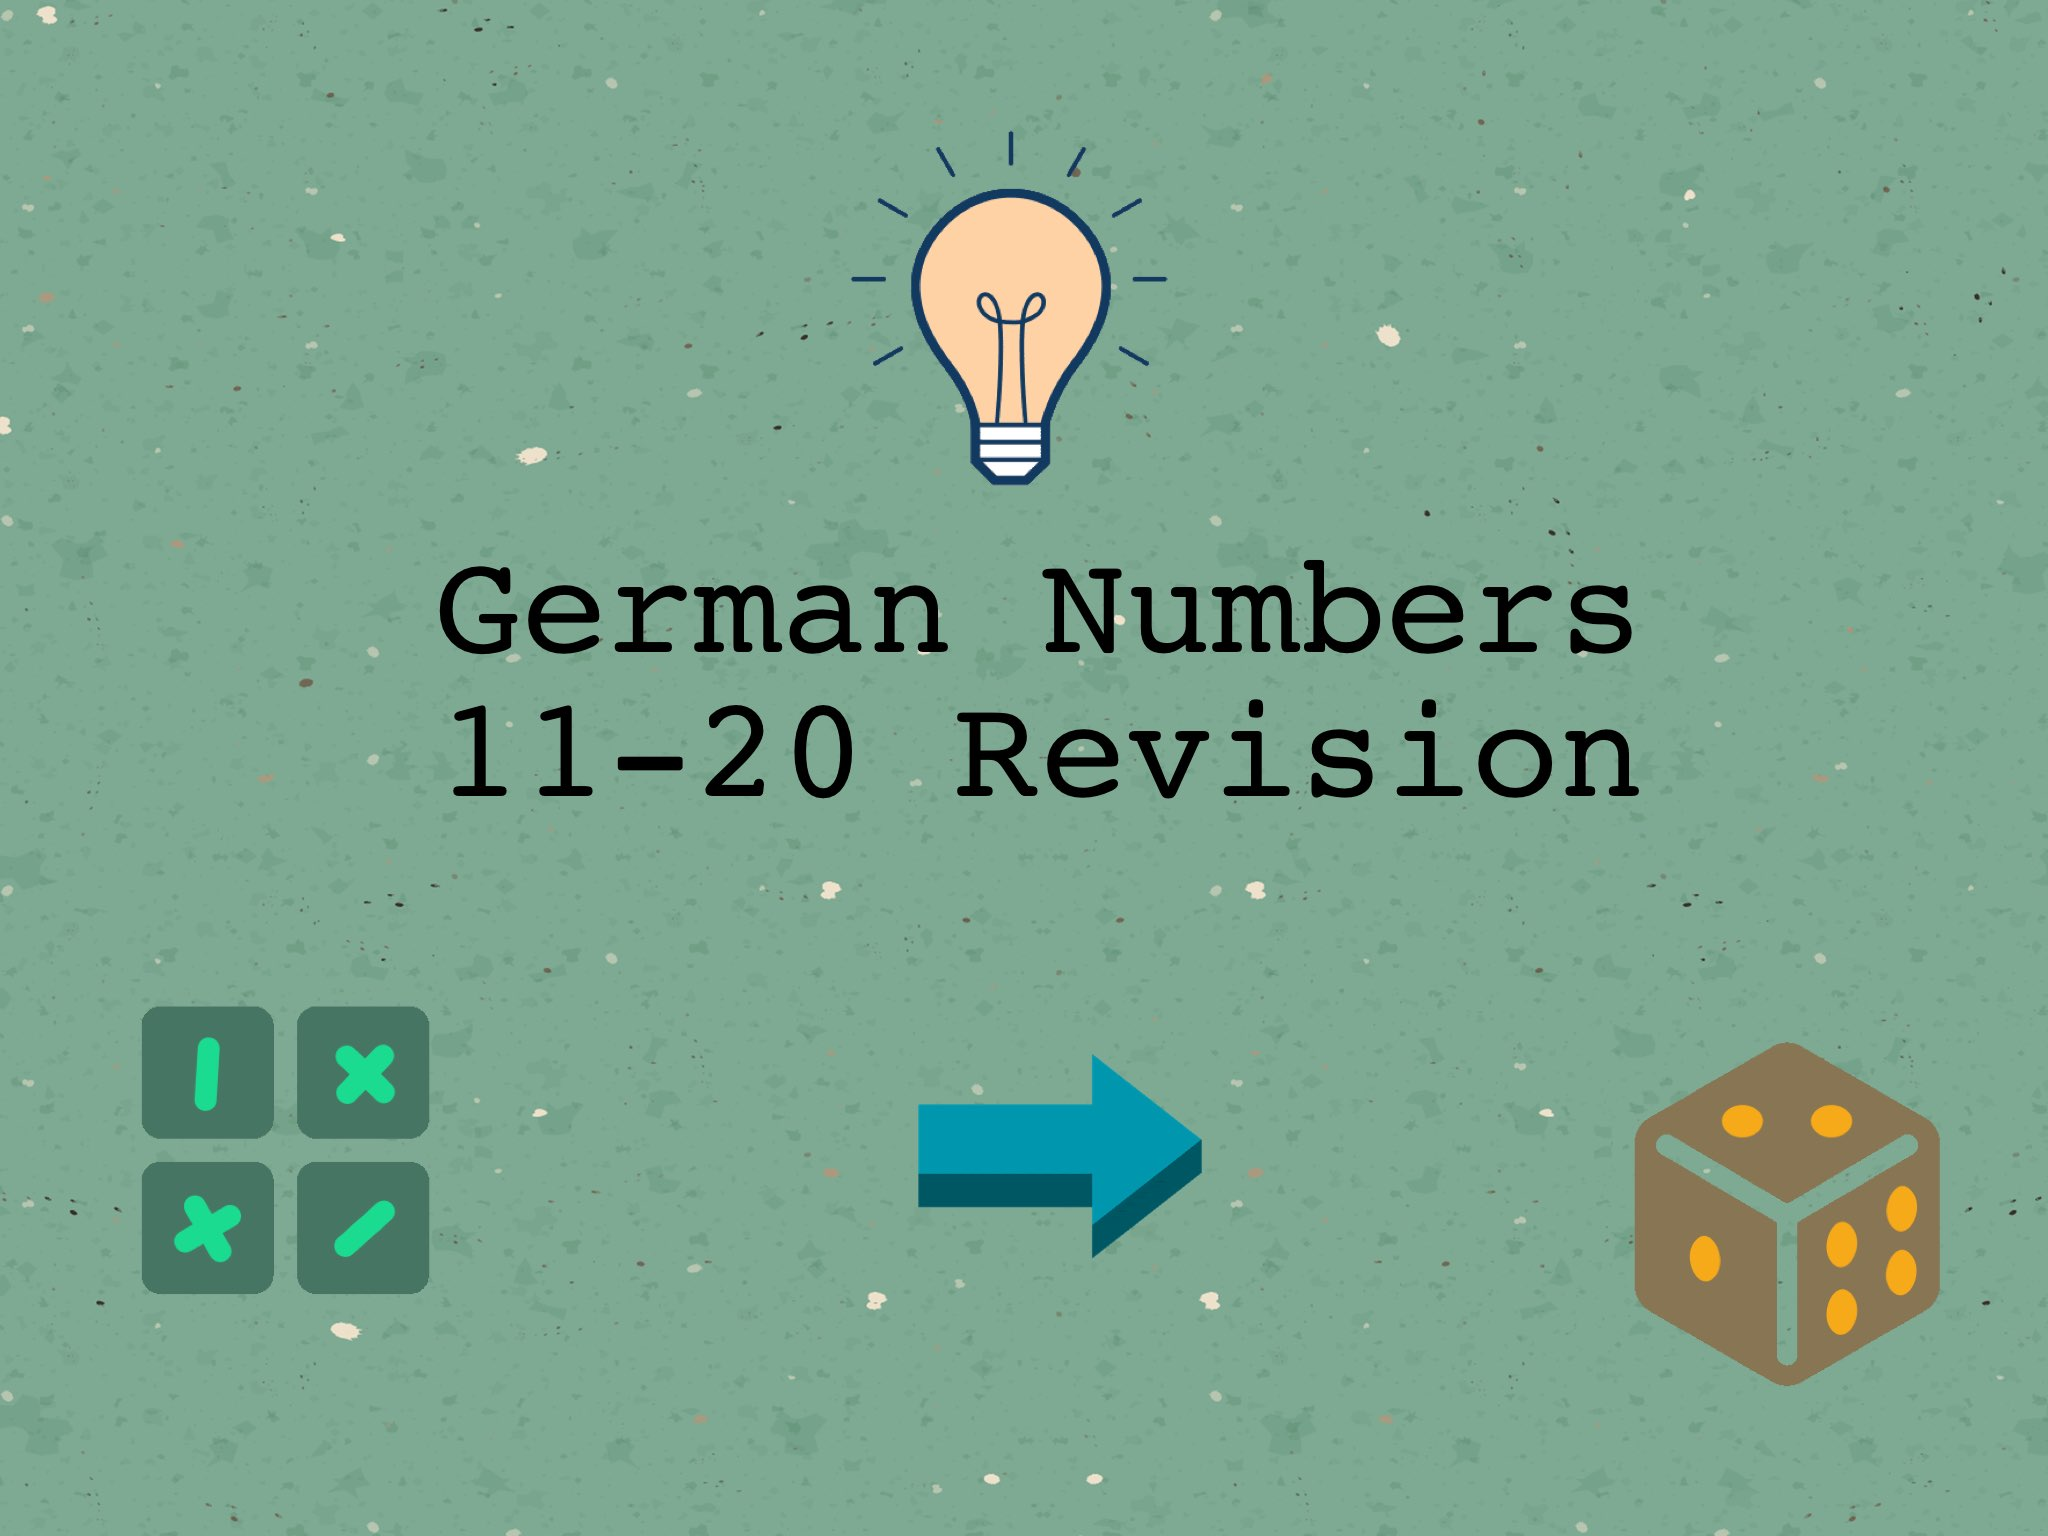 German Numbers 11-20 Revision by Josh Dobos - Educational